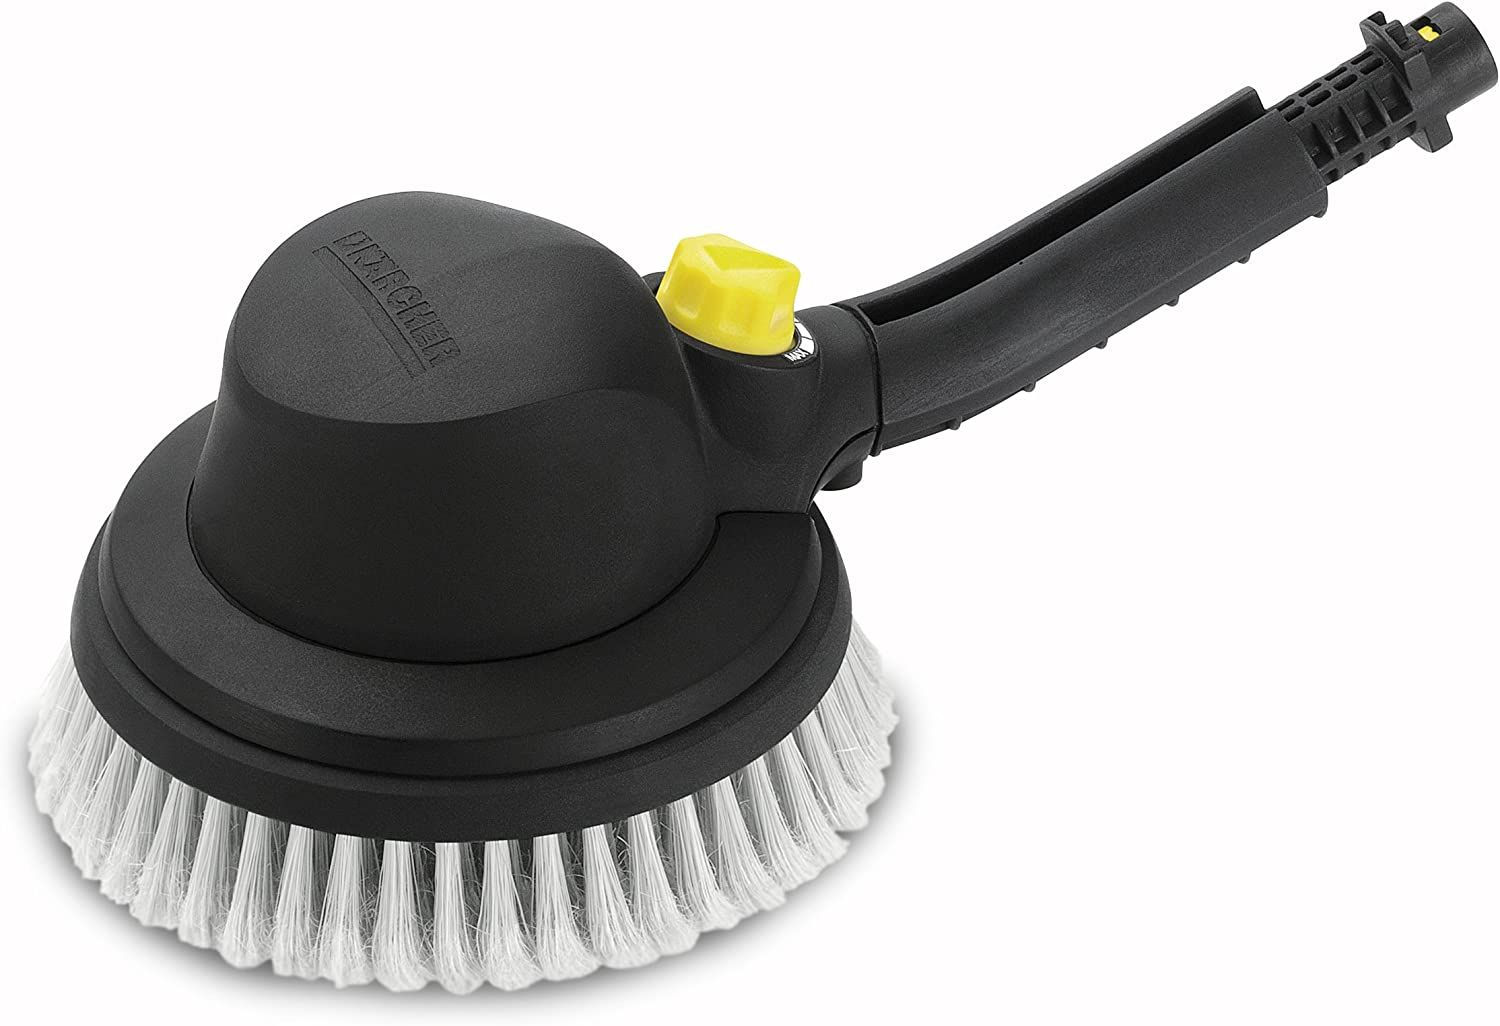 Rotary Wash Brush Brush Brush B00CM5LRVM cd4adc